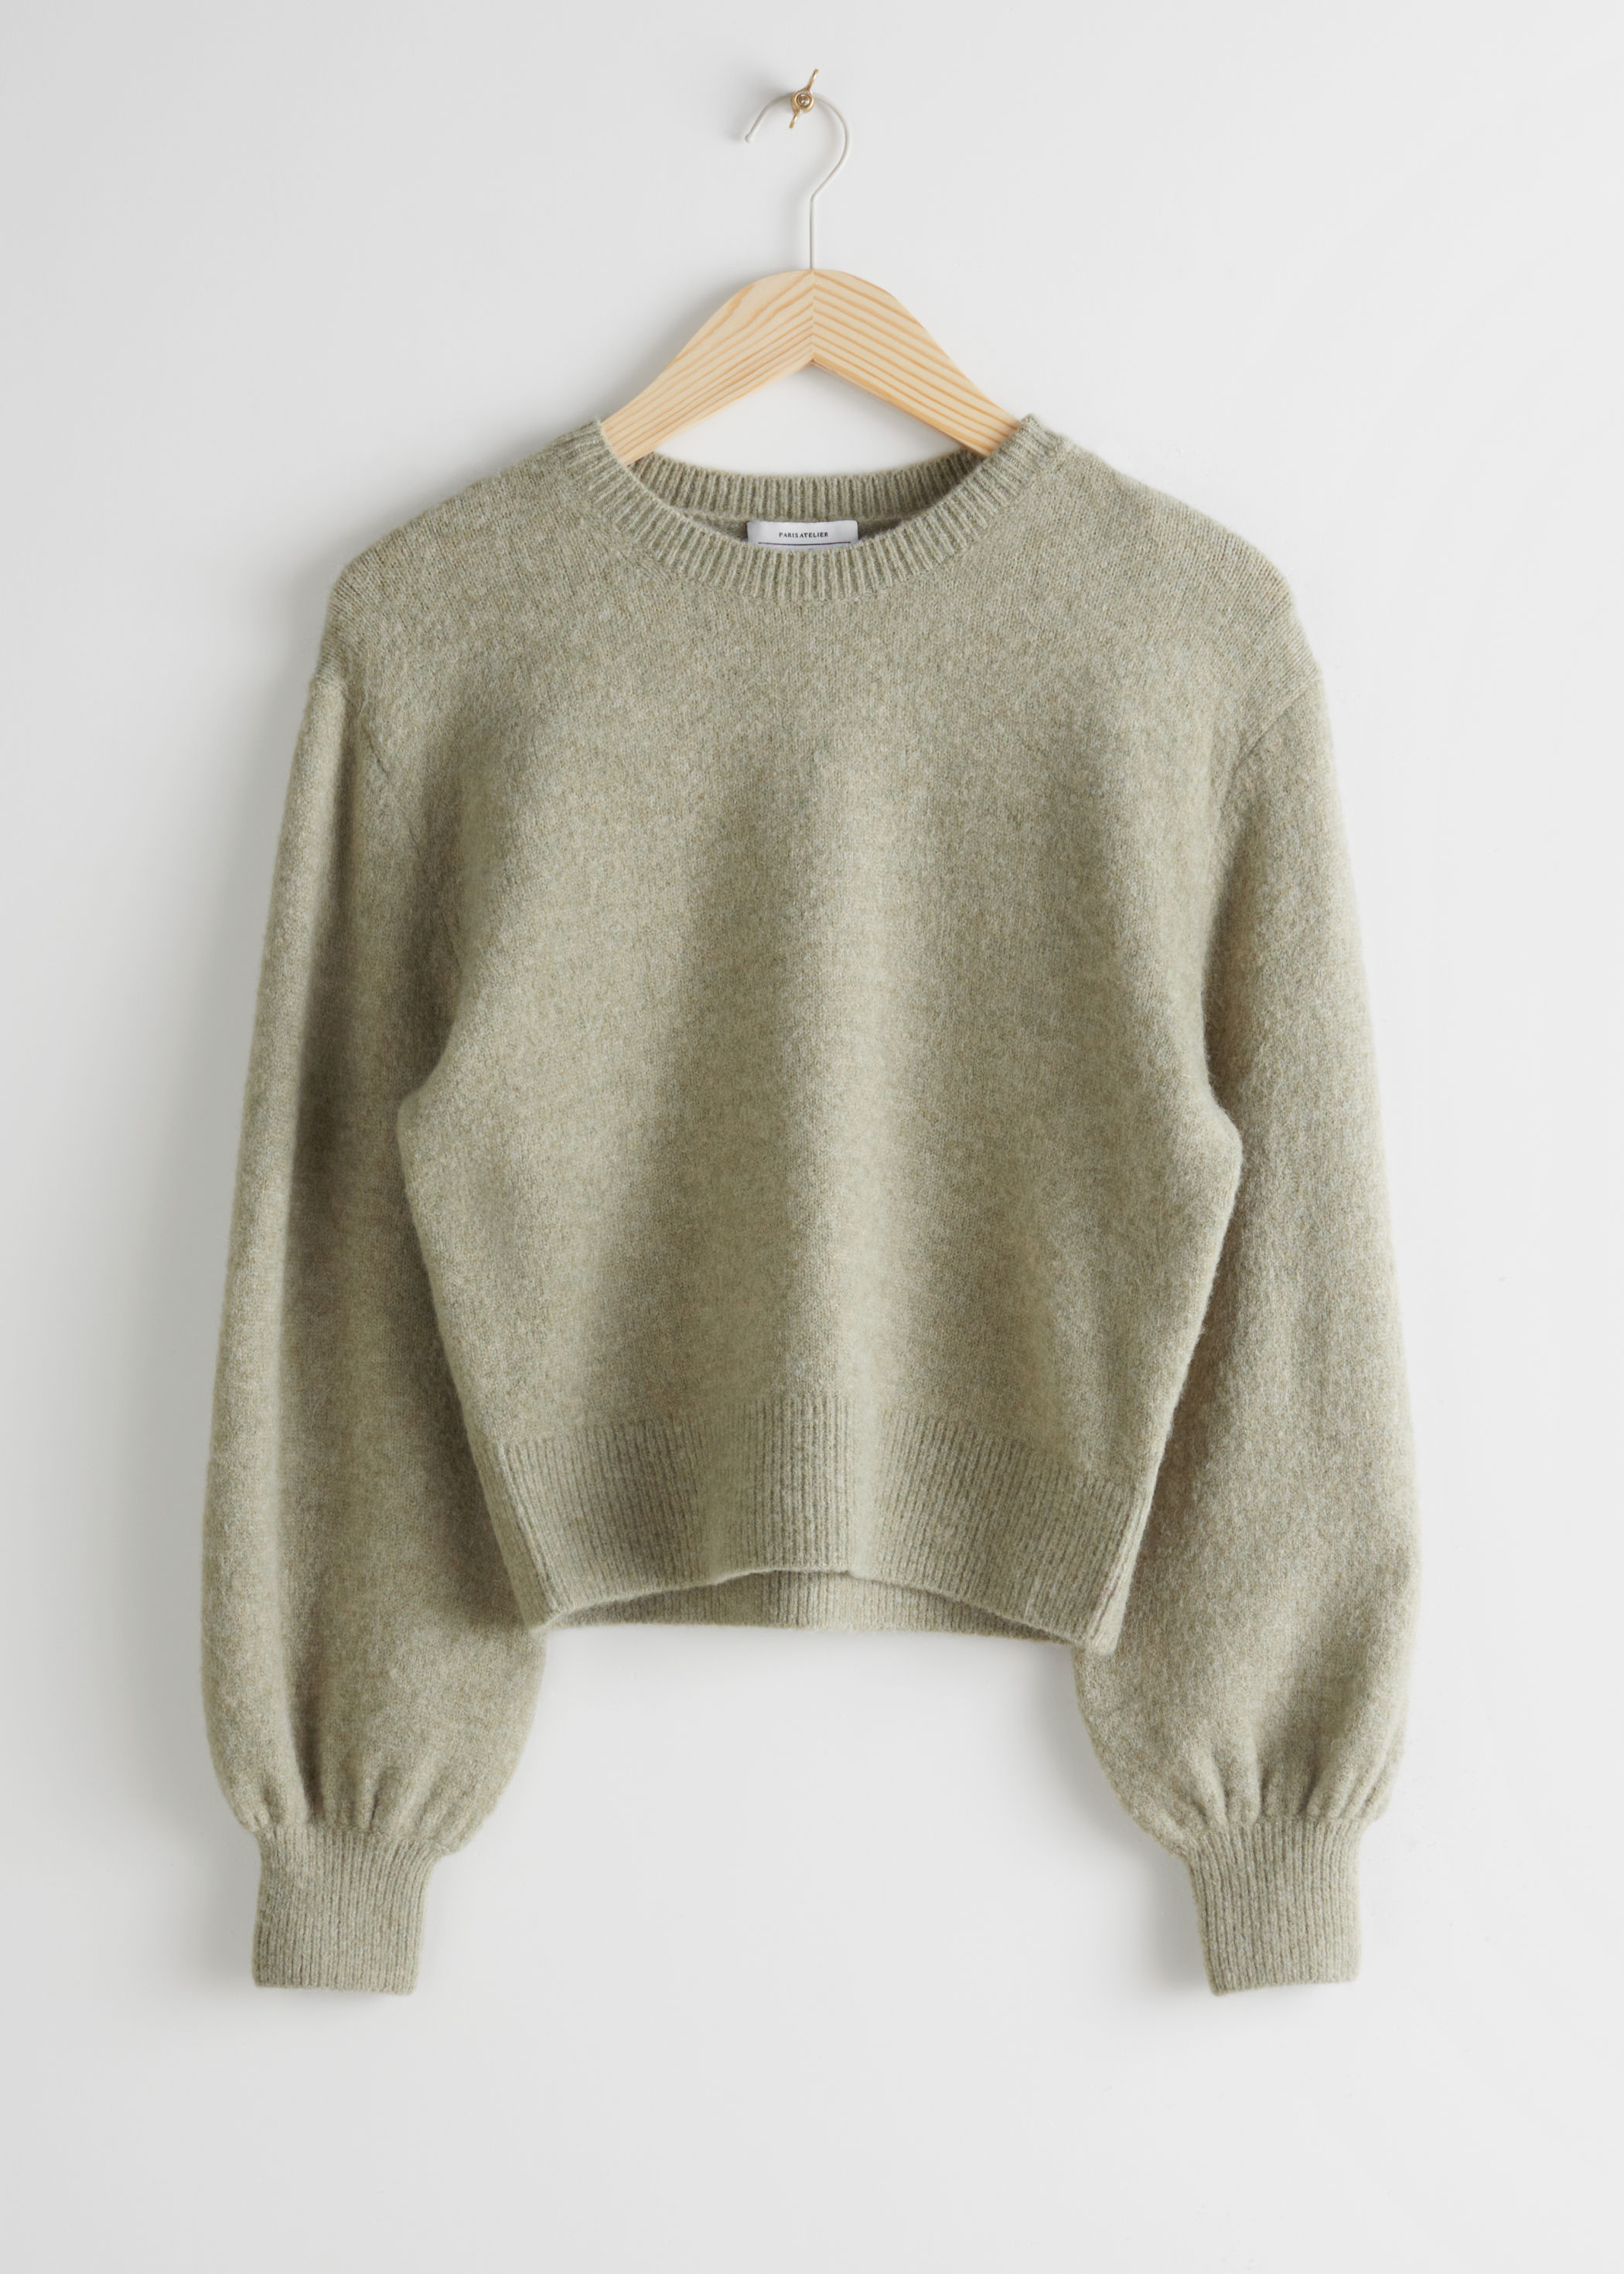 & Other Stories Sage Green Cropped Sweater